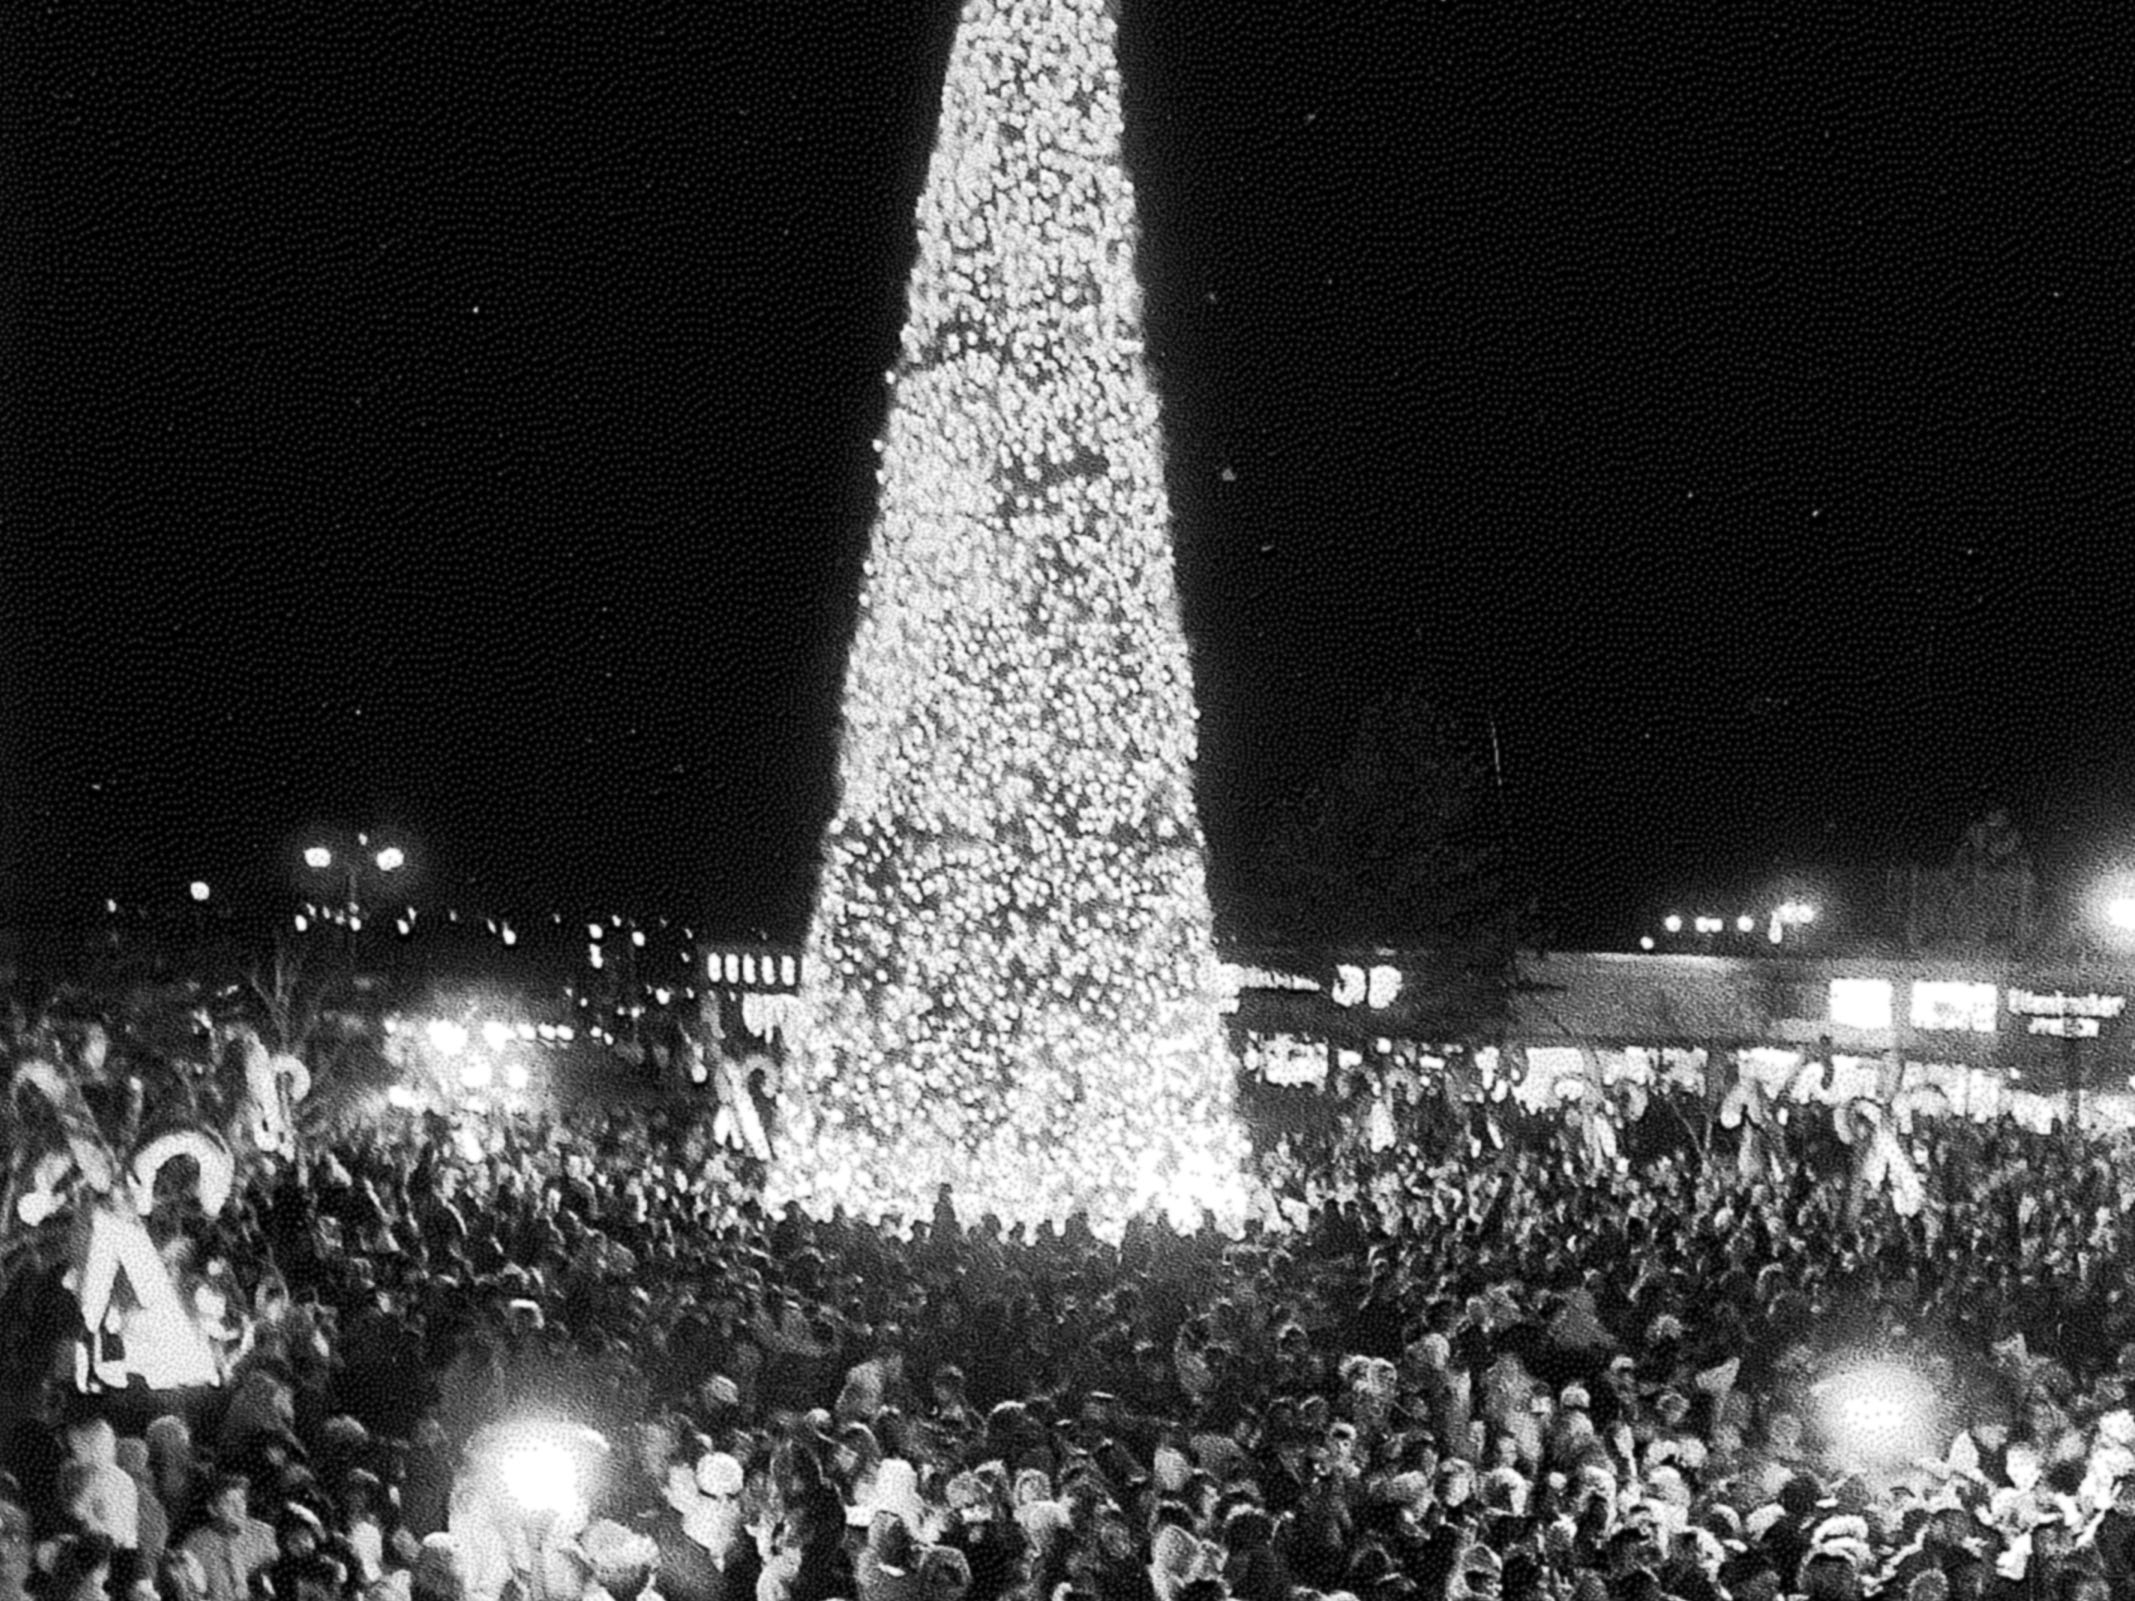 Crowds pack the square outside Capitol Court for the northwest side shopping center's annual tree lighting on Nov. 22, 1968. The 80-foot tree was festooned with more than 10,000 lights. This photo was published in the Nov. 23, 1968, Milwaukee Journal.